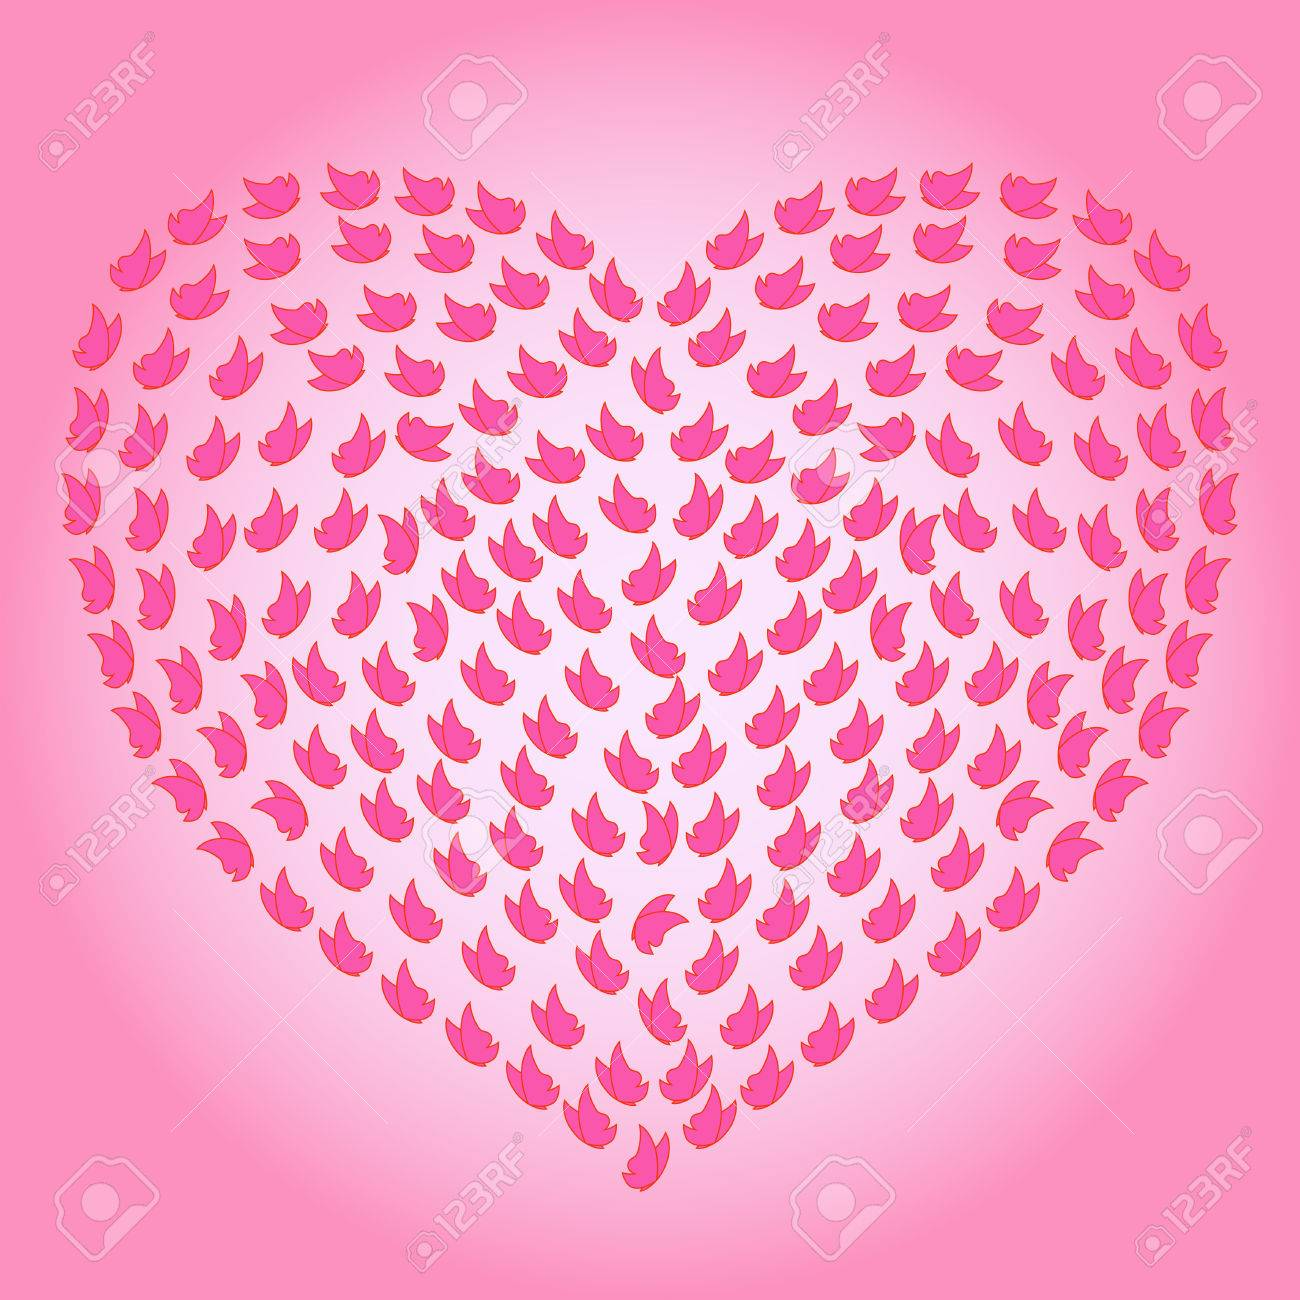 1300x1300 Heart With Many Small Butterflies On The Pink Backgrounds